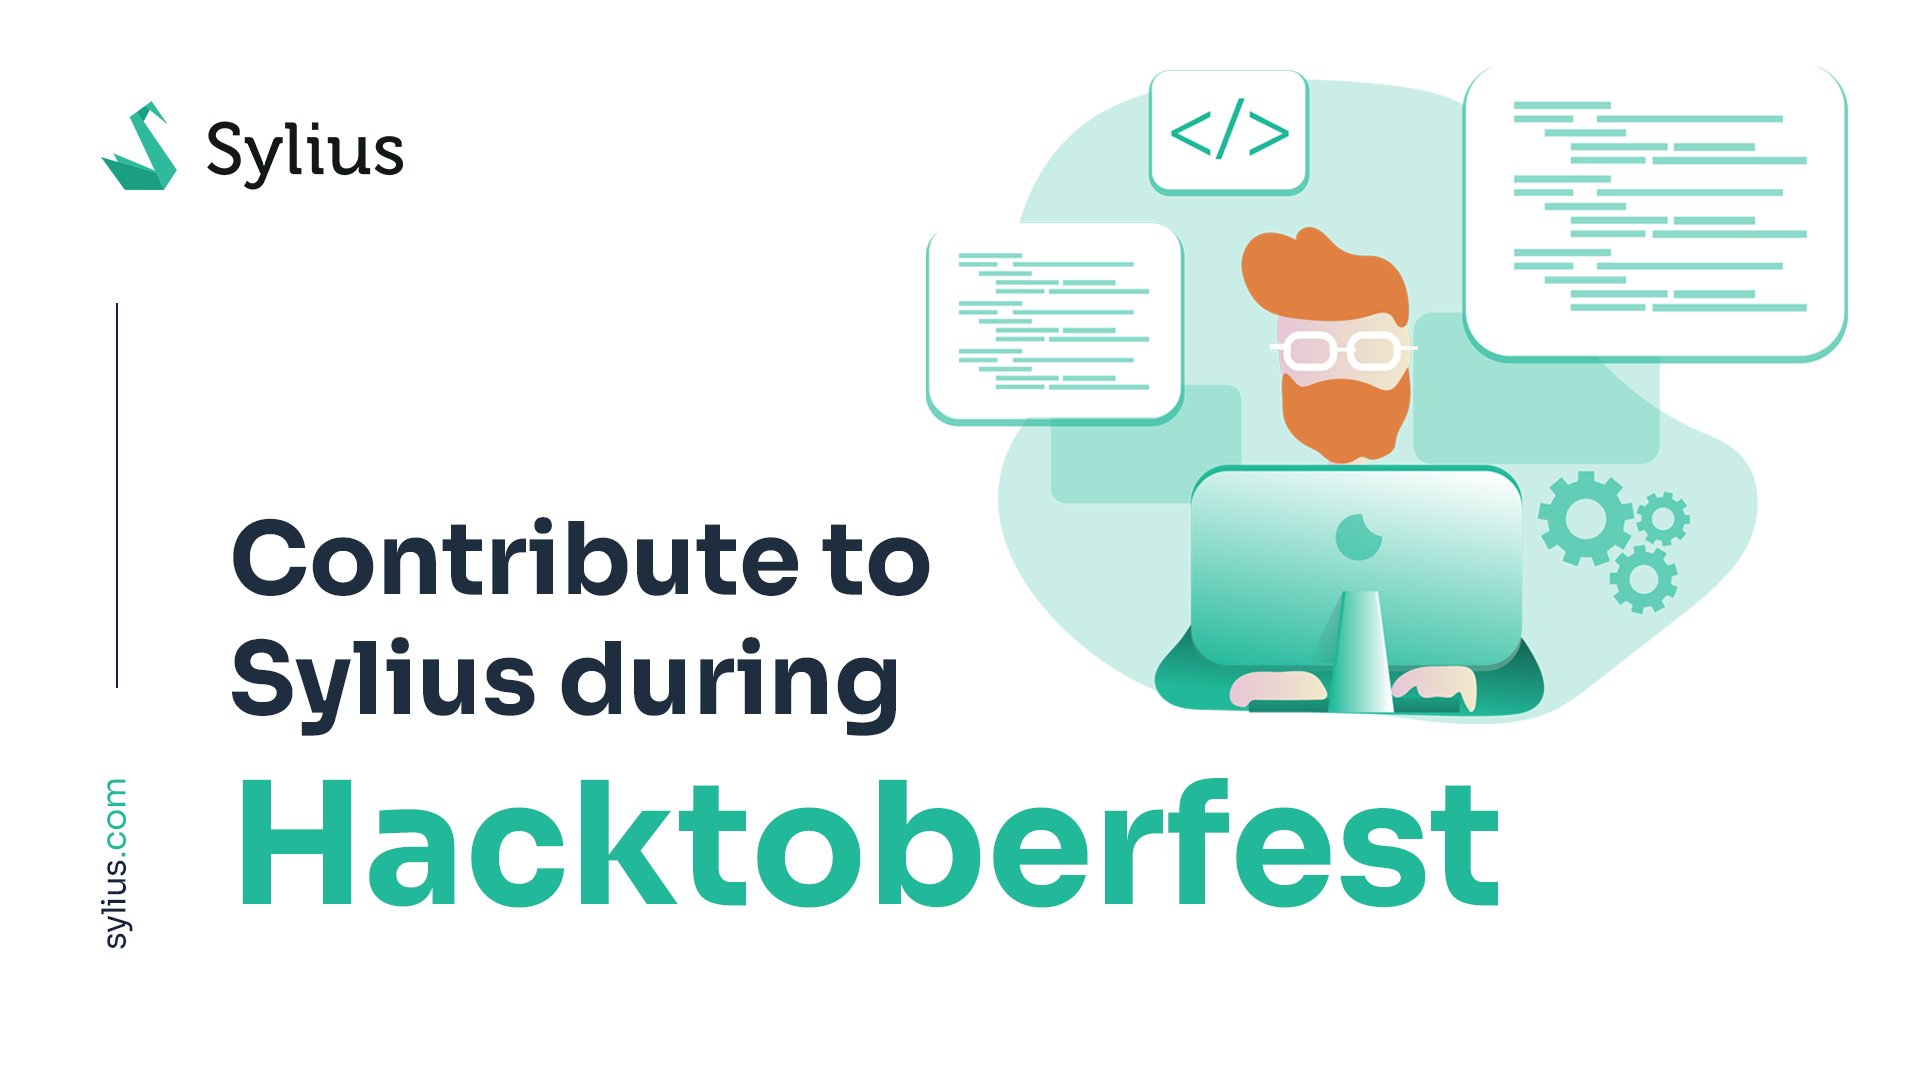 Contribute to Sylius during the Hacktoberfest